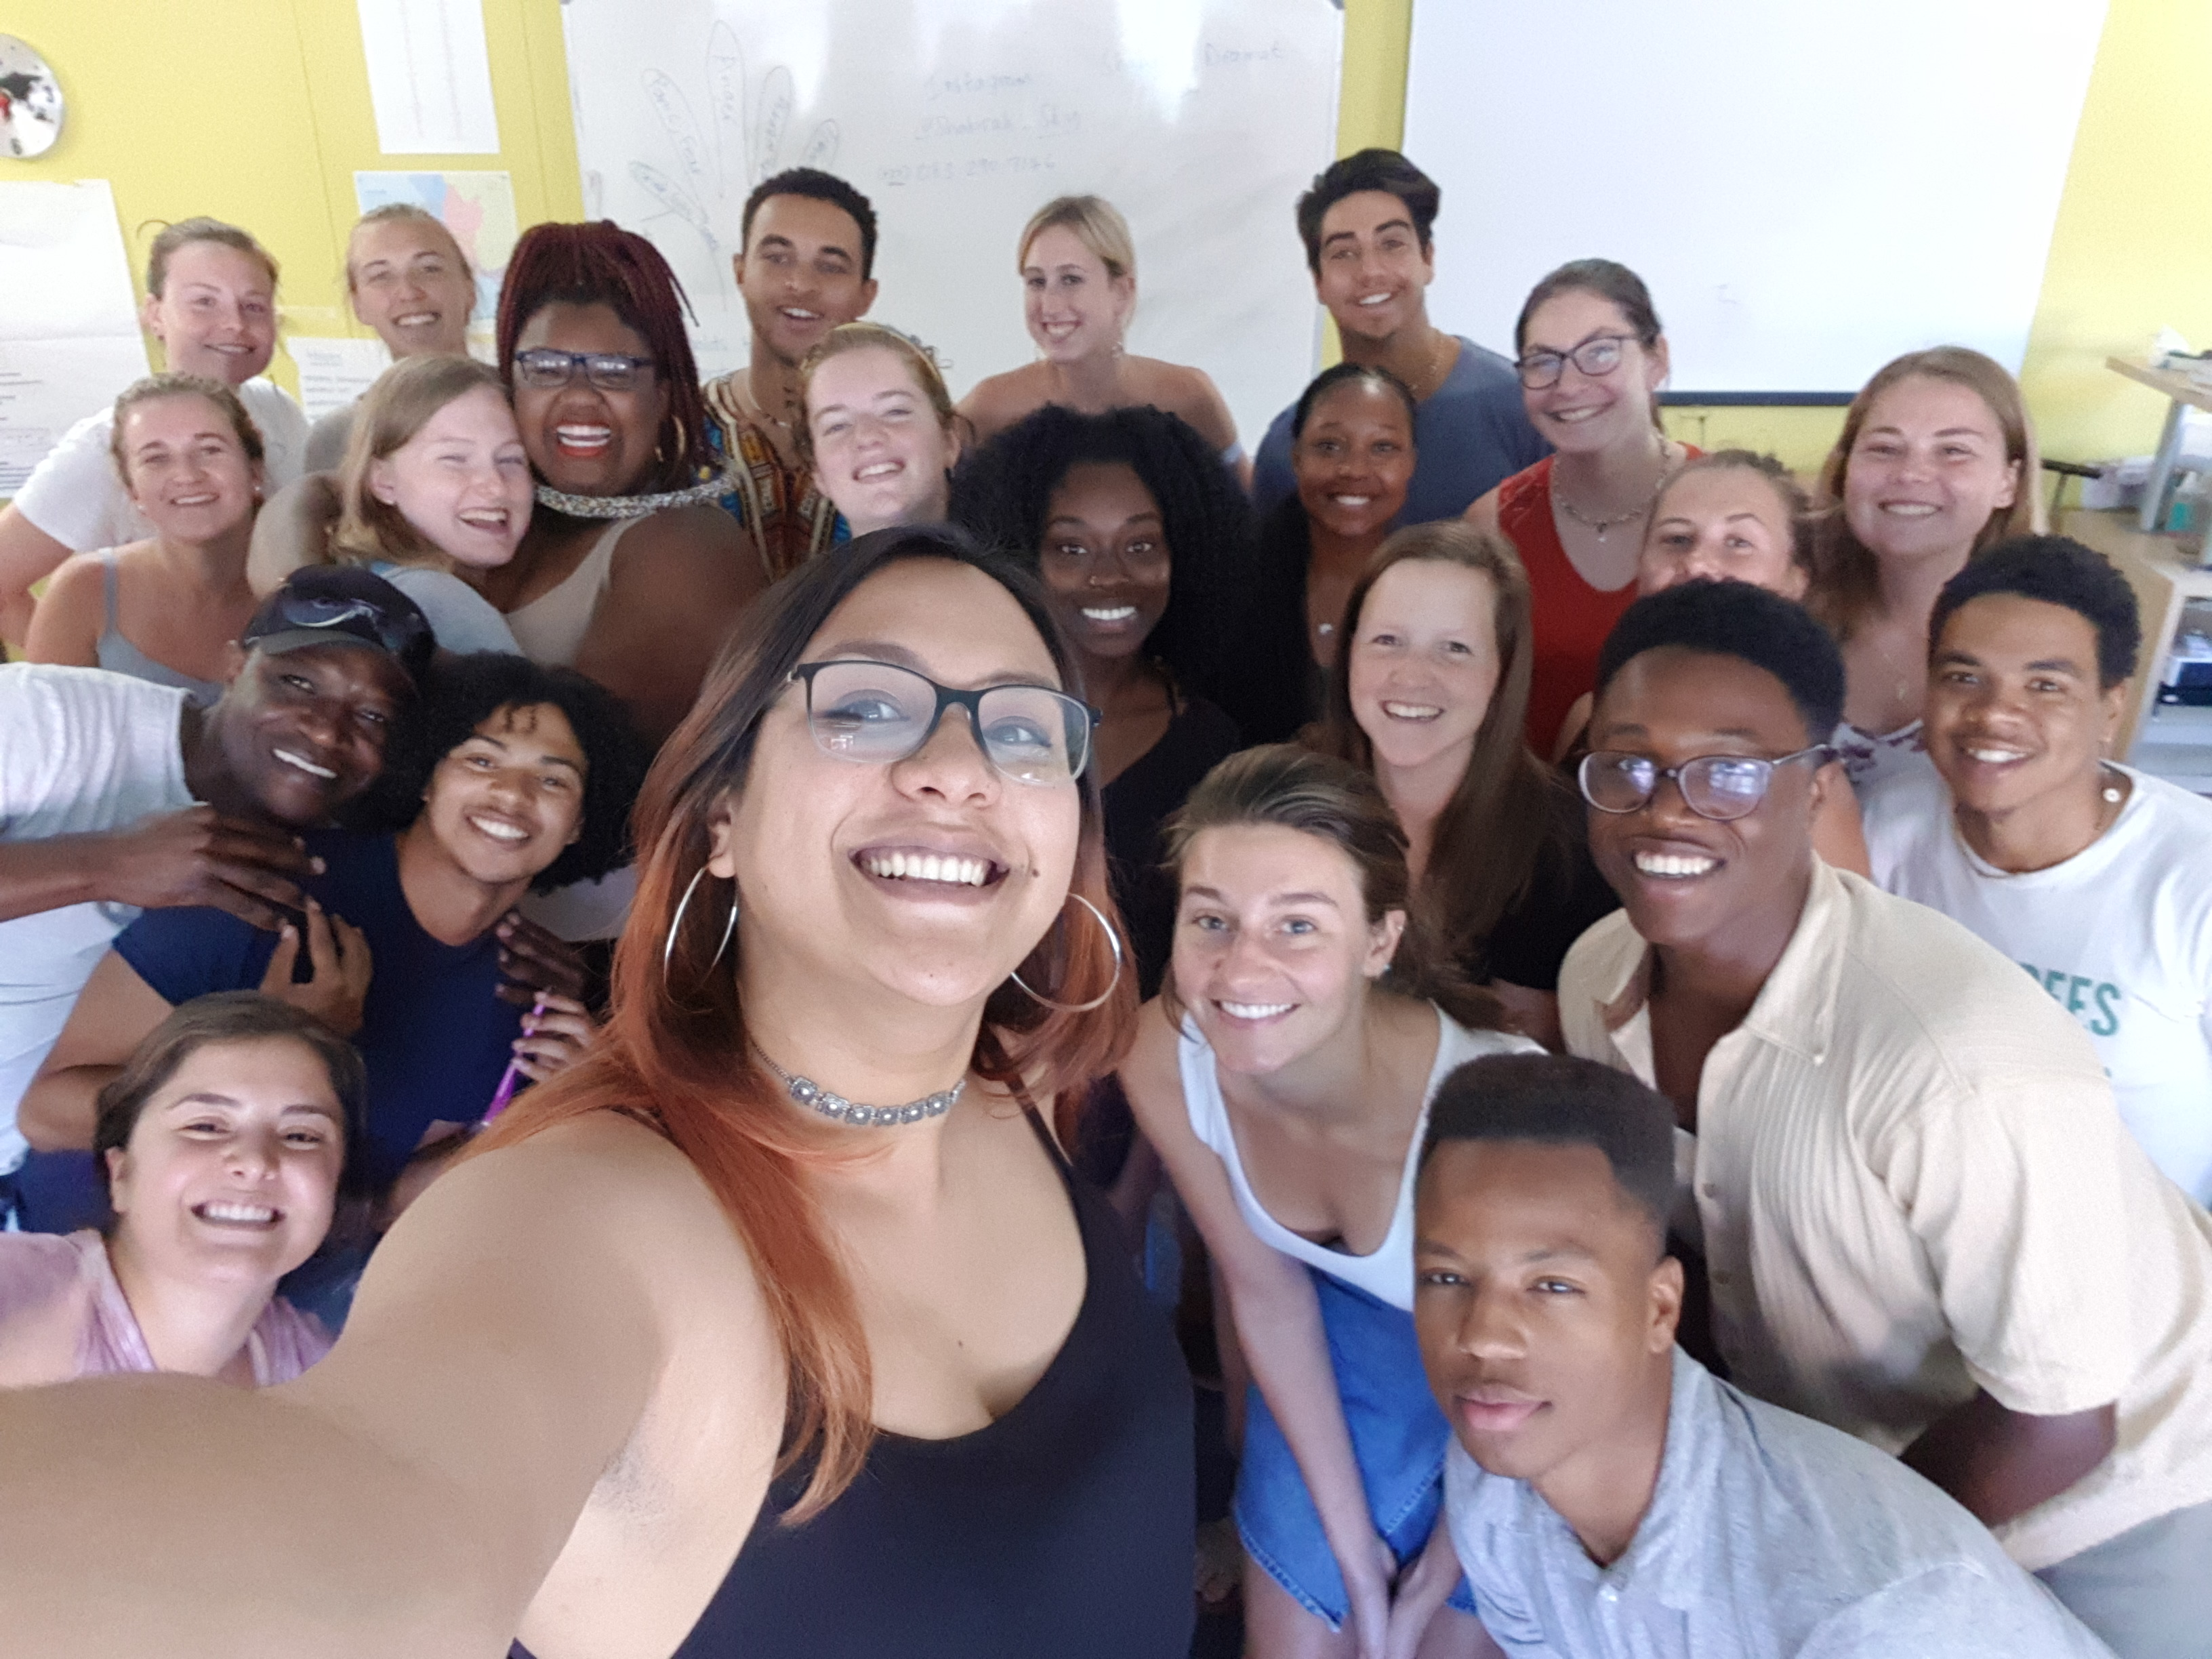 Post guest-lecture selfie with students from across the world, in SA on an exchange programme